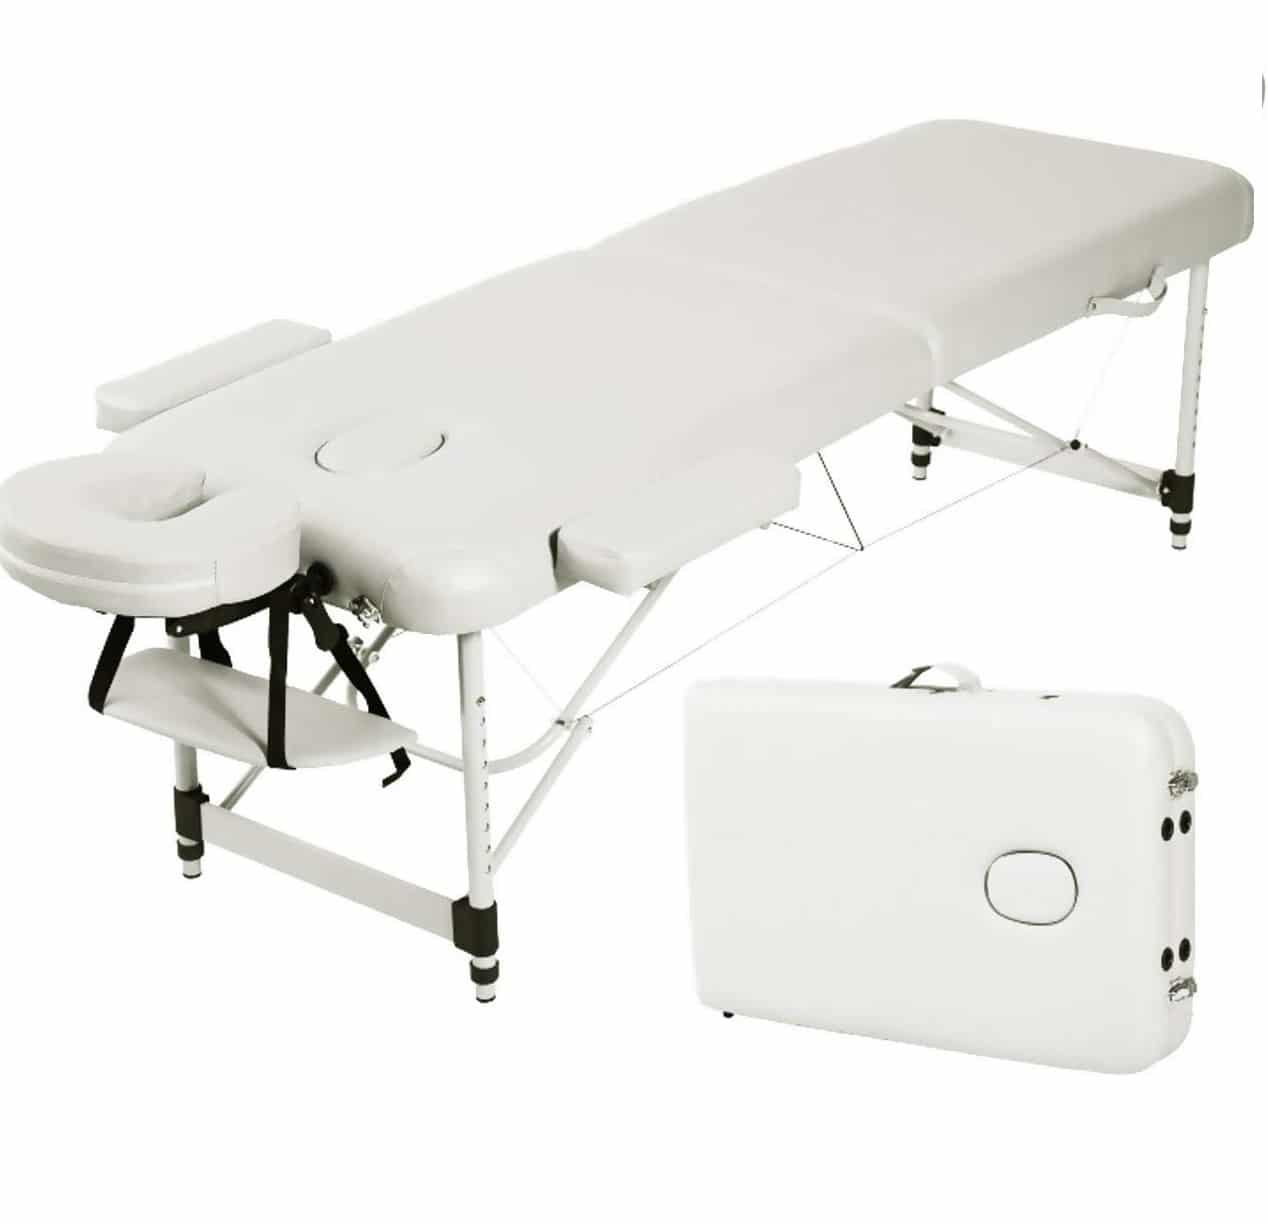 10.Angel USA Ultra Light Weight Sturdy Aluminum Frame 84L Portable Massage Table Facial SPA Bed Tattoo w Free Carry Case, Face Cradle, Arm Rests